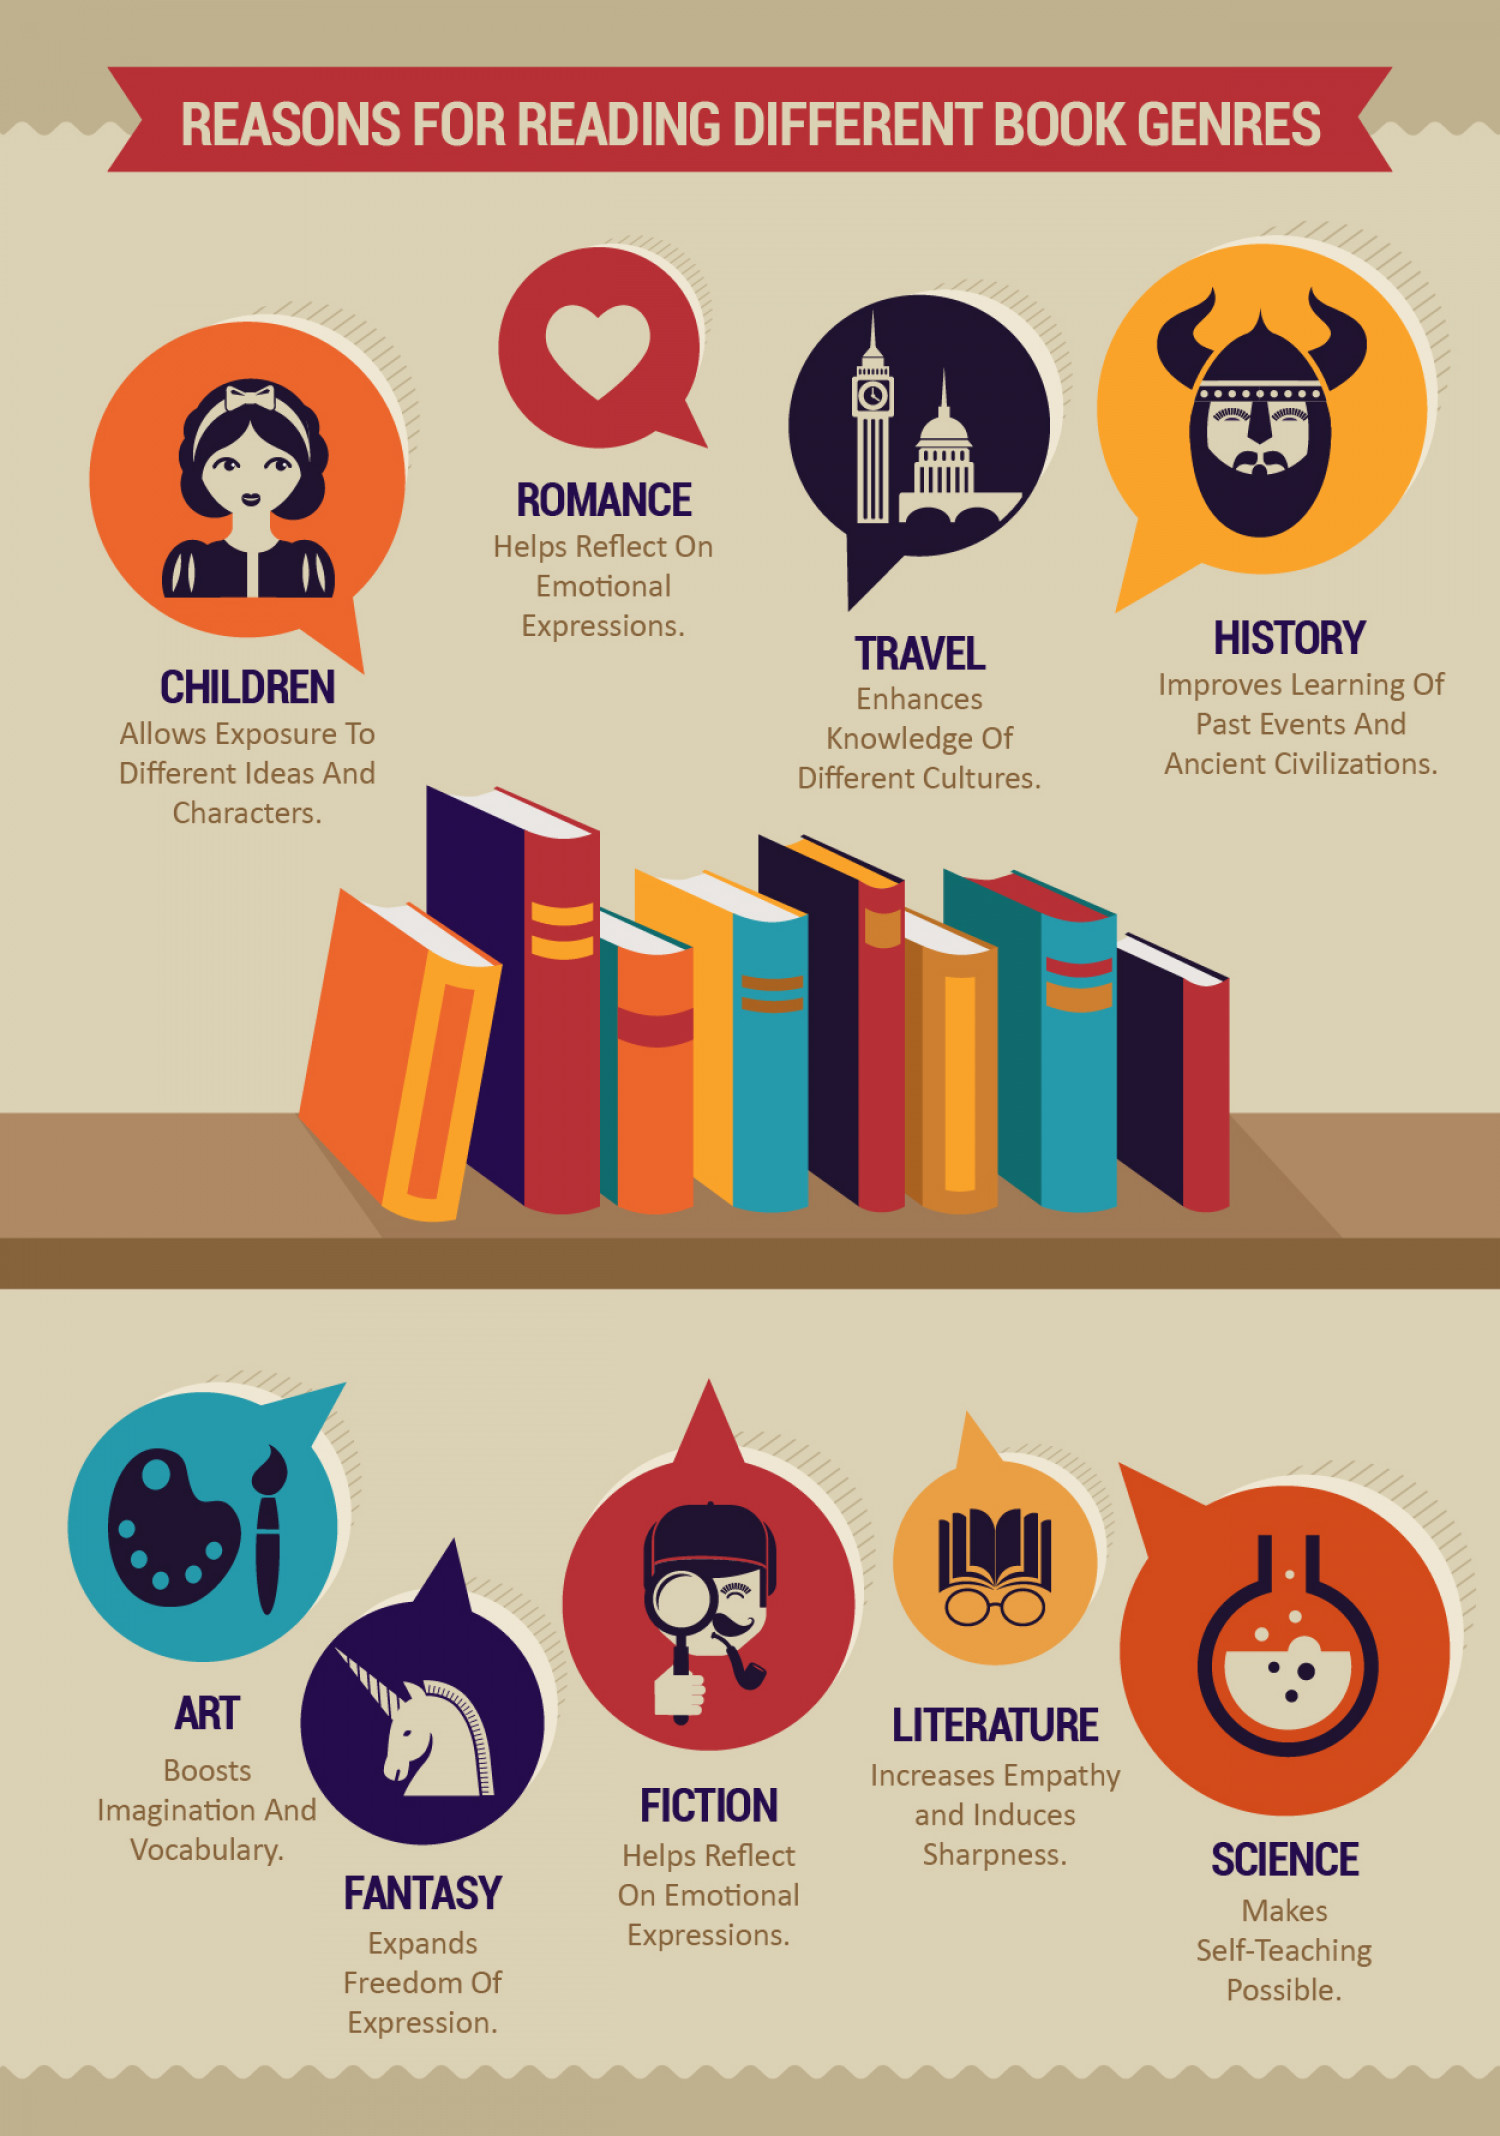 Why Is It Important For Children To Read Different Genres